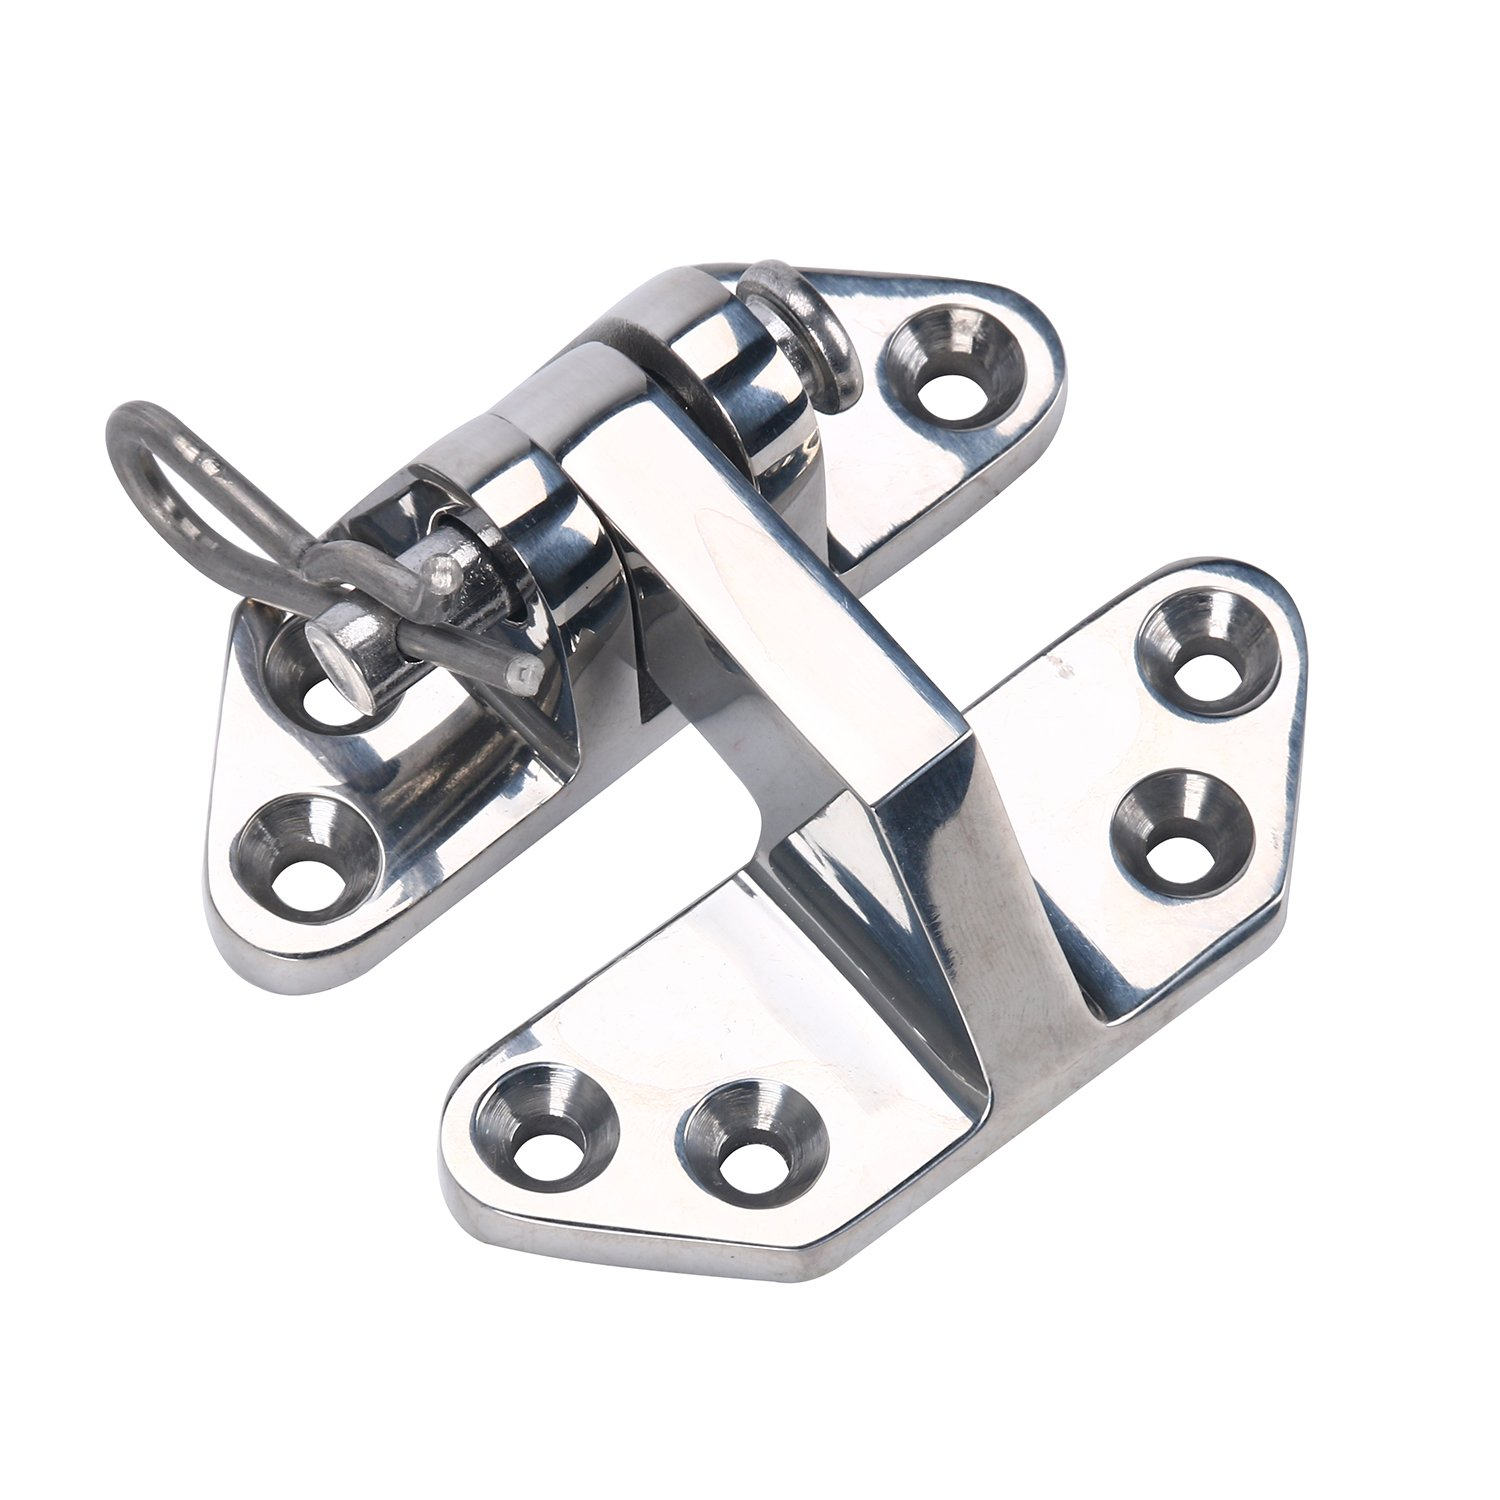 Amarine-made Heavy Duty Marine Stainless Steel Hatch Hinge 3'' x 2-3/4